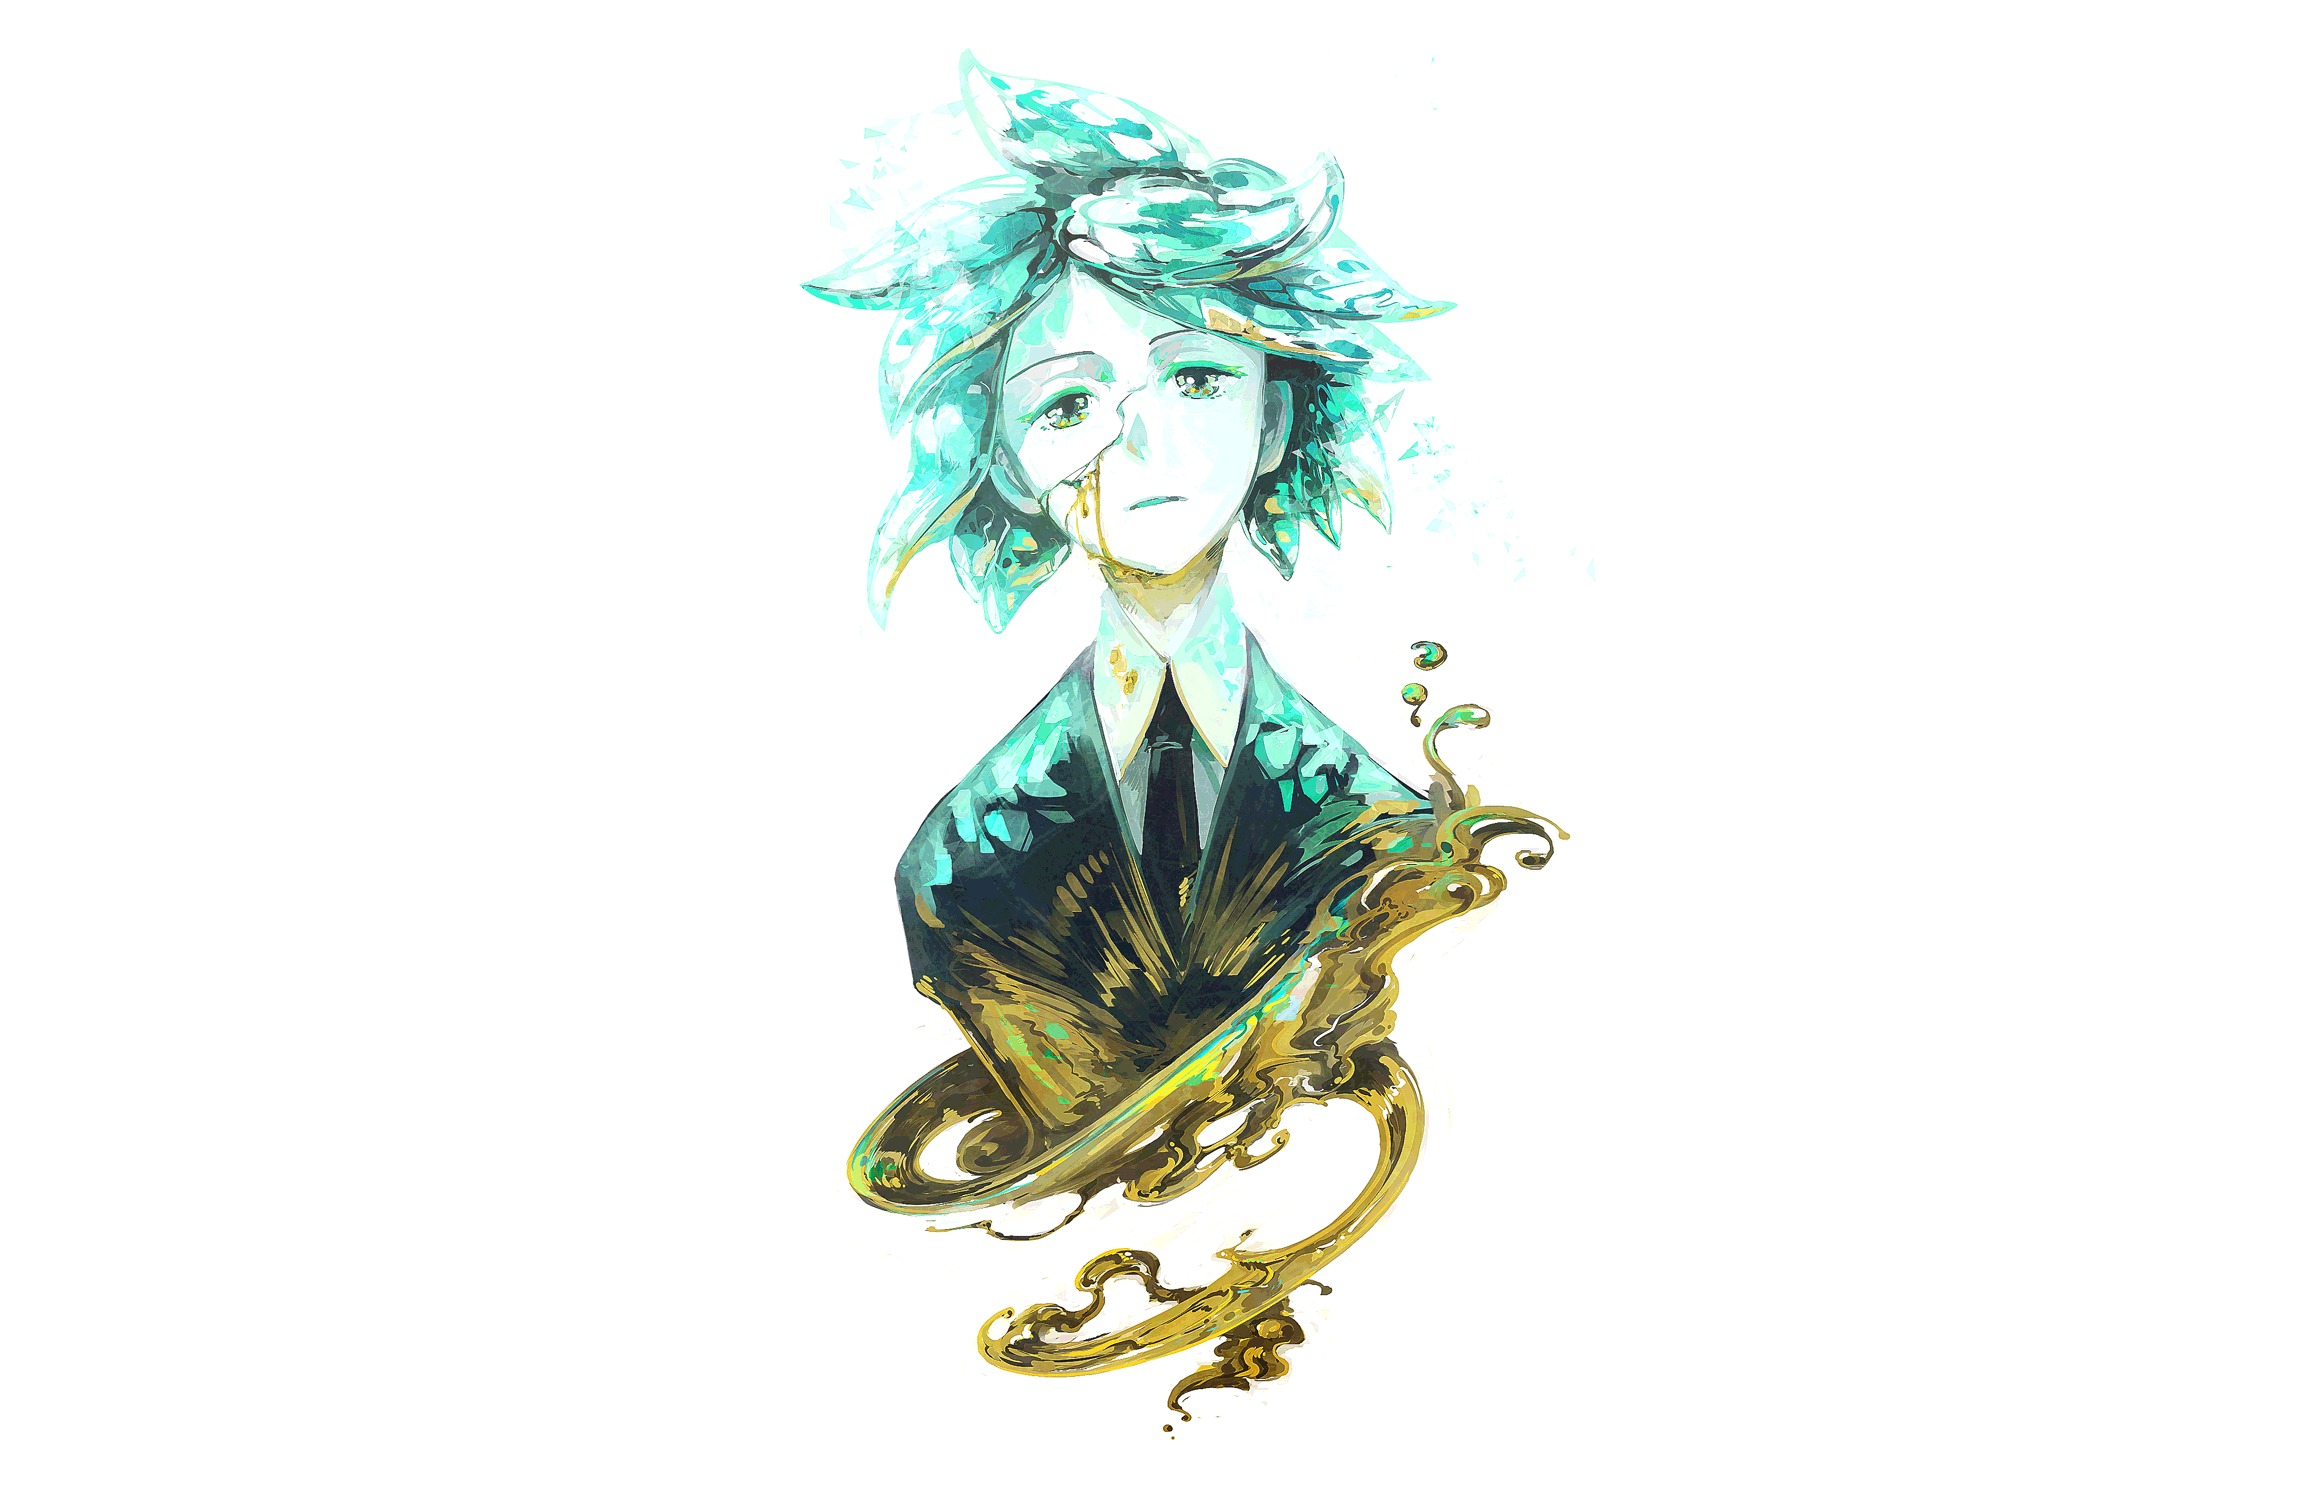 Phosphophyllite Art From Land Of The Lustrous Wallpaper Hd Anime